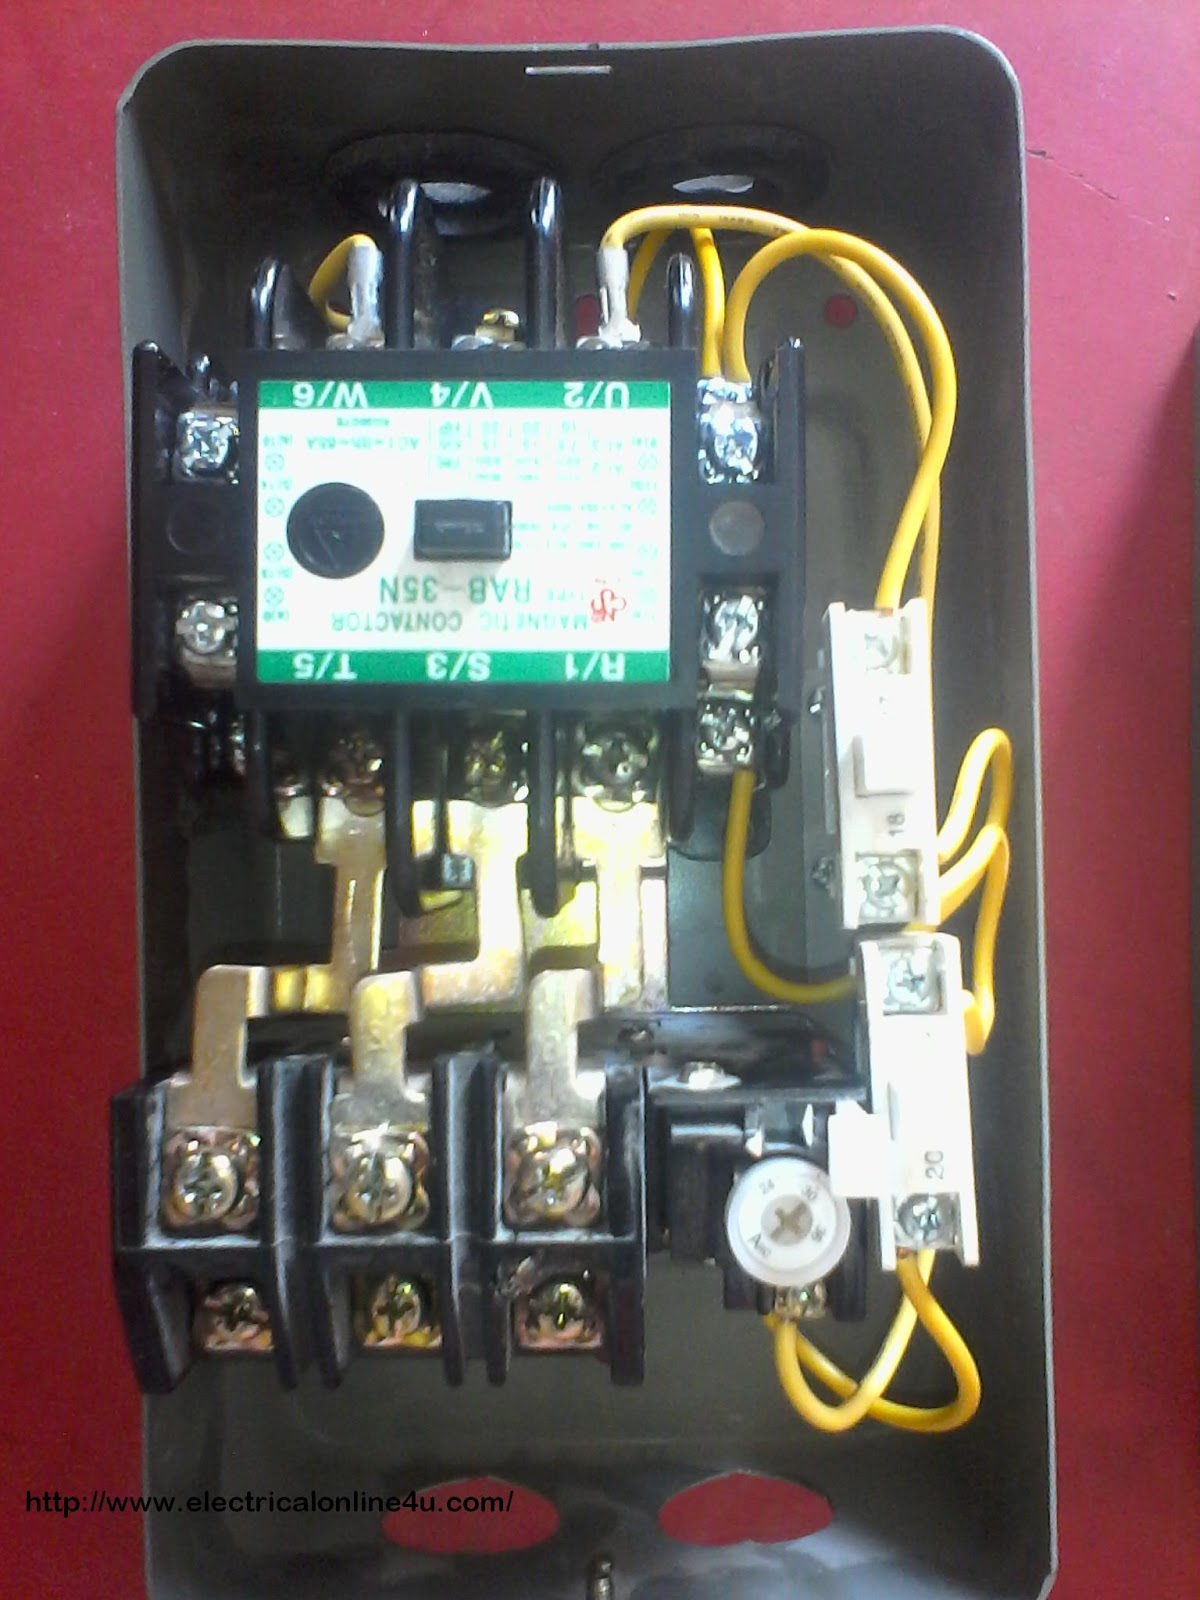 contactor%2Bwiring how to wire contactor and overload relay contactor wiring 3 phase contactor with overload wiring diagram at suagrazia.org